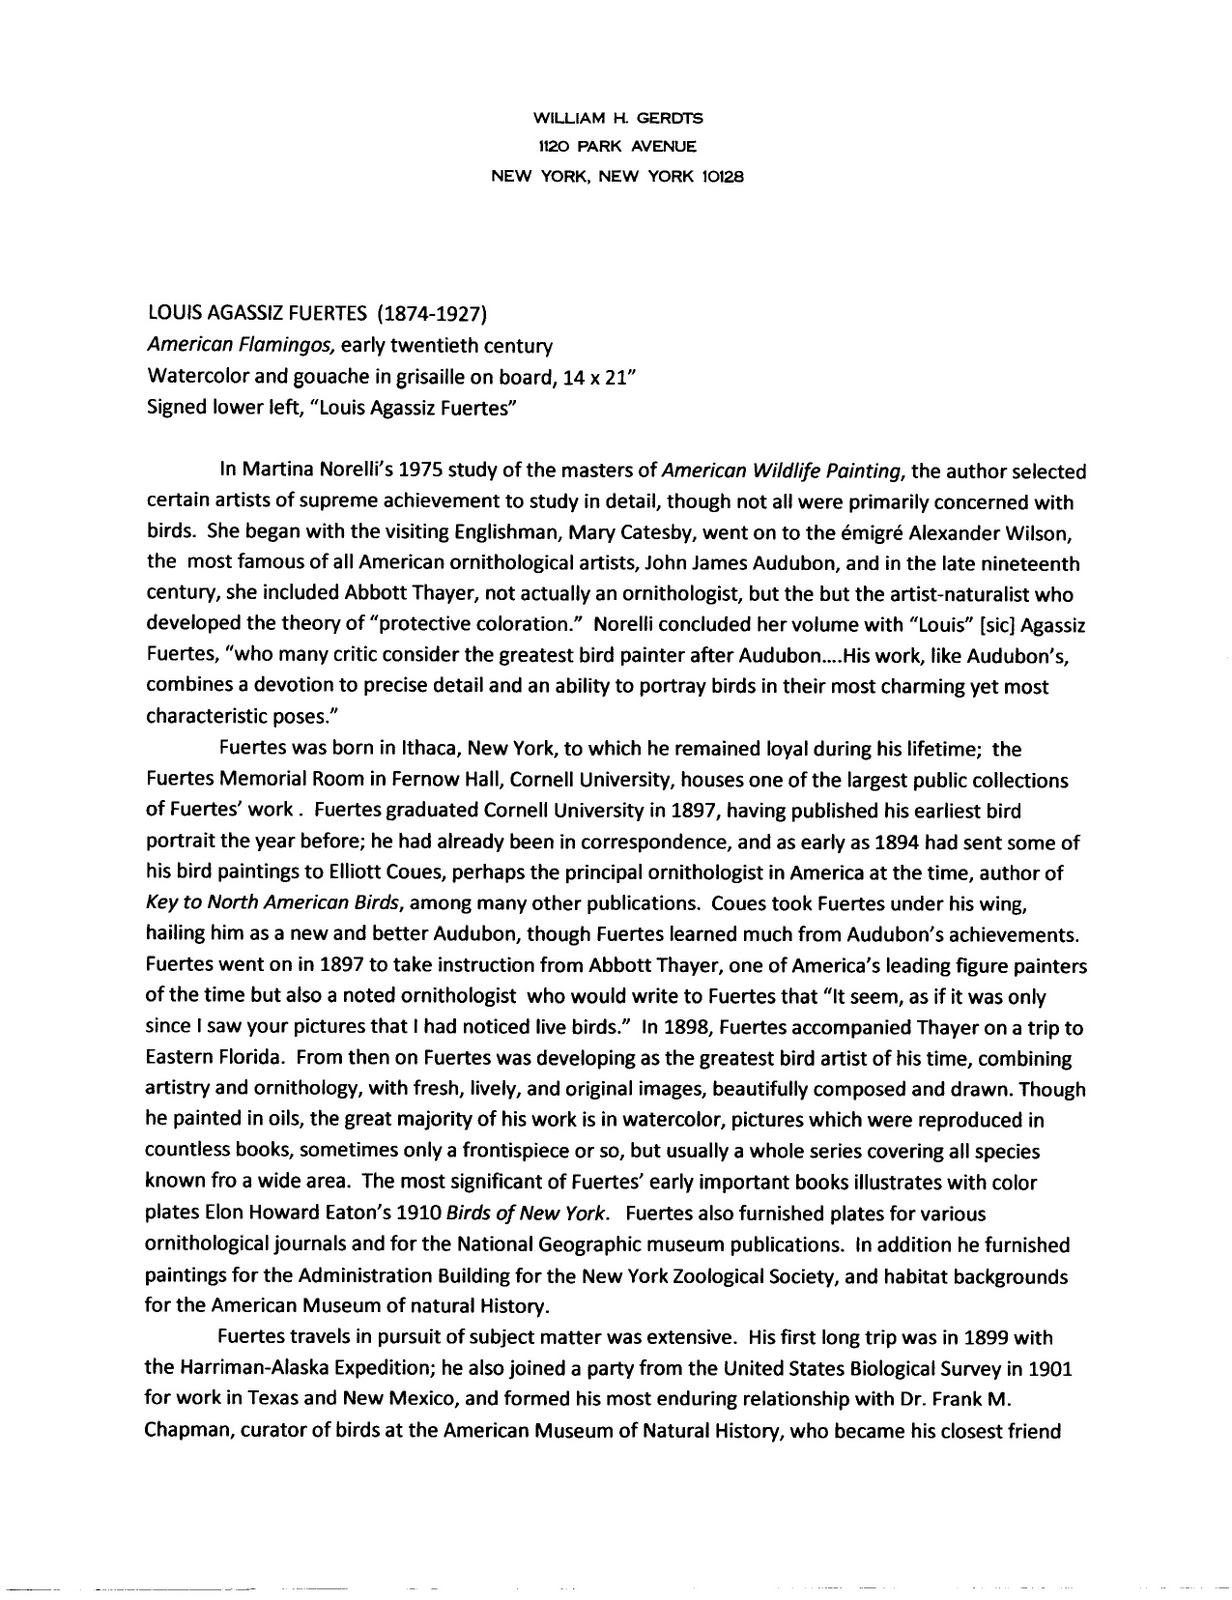 024 Personal Essay Outline Example Formidable Narrative Examples Template Full